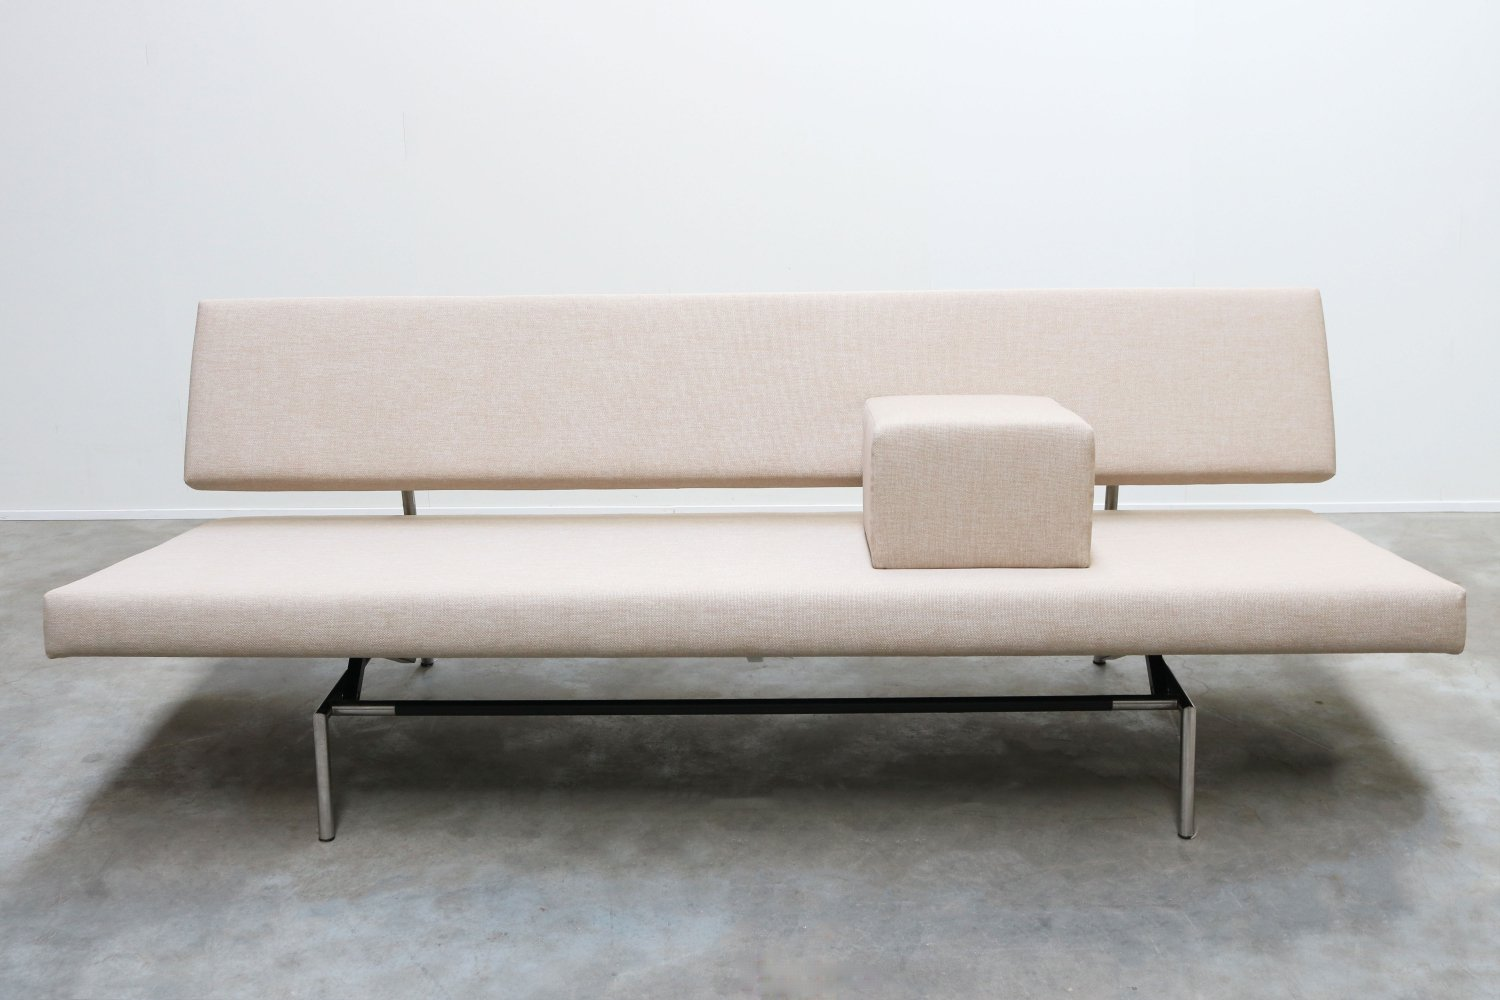 Dutch design sofa / daybed BR02 by Martin Visser for Spectrum, 1960